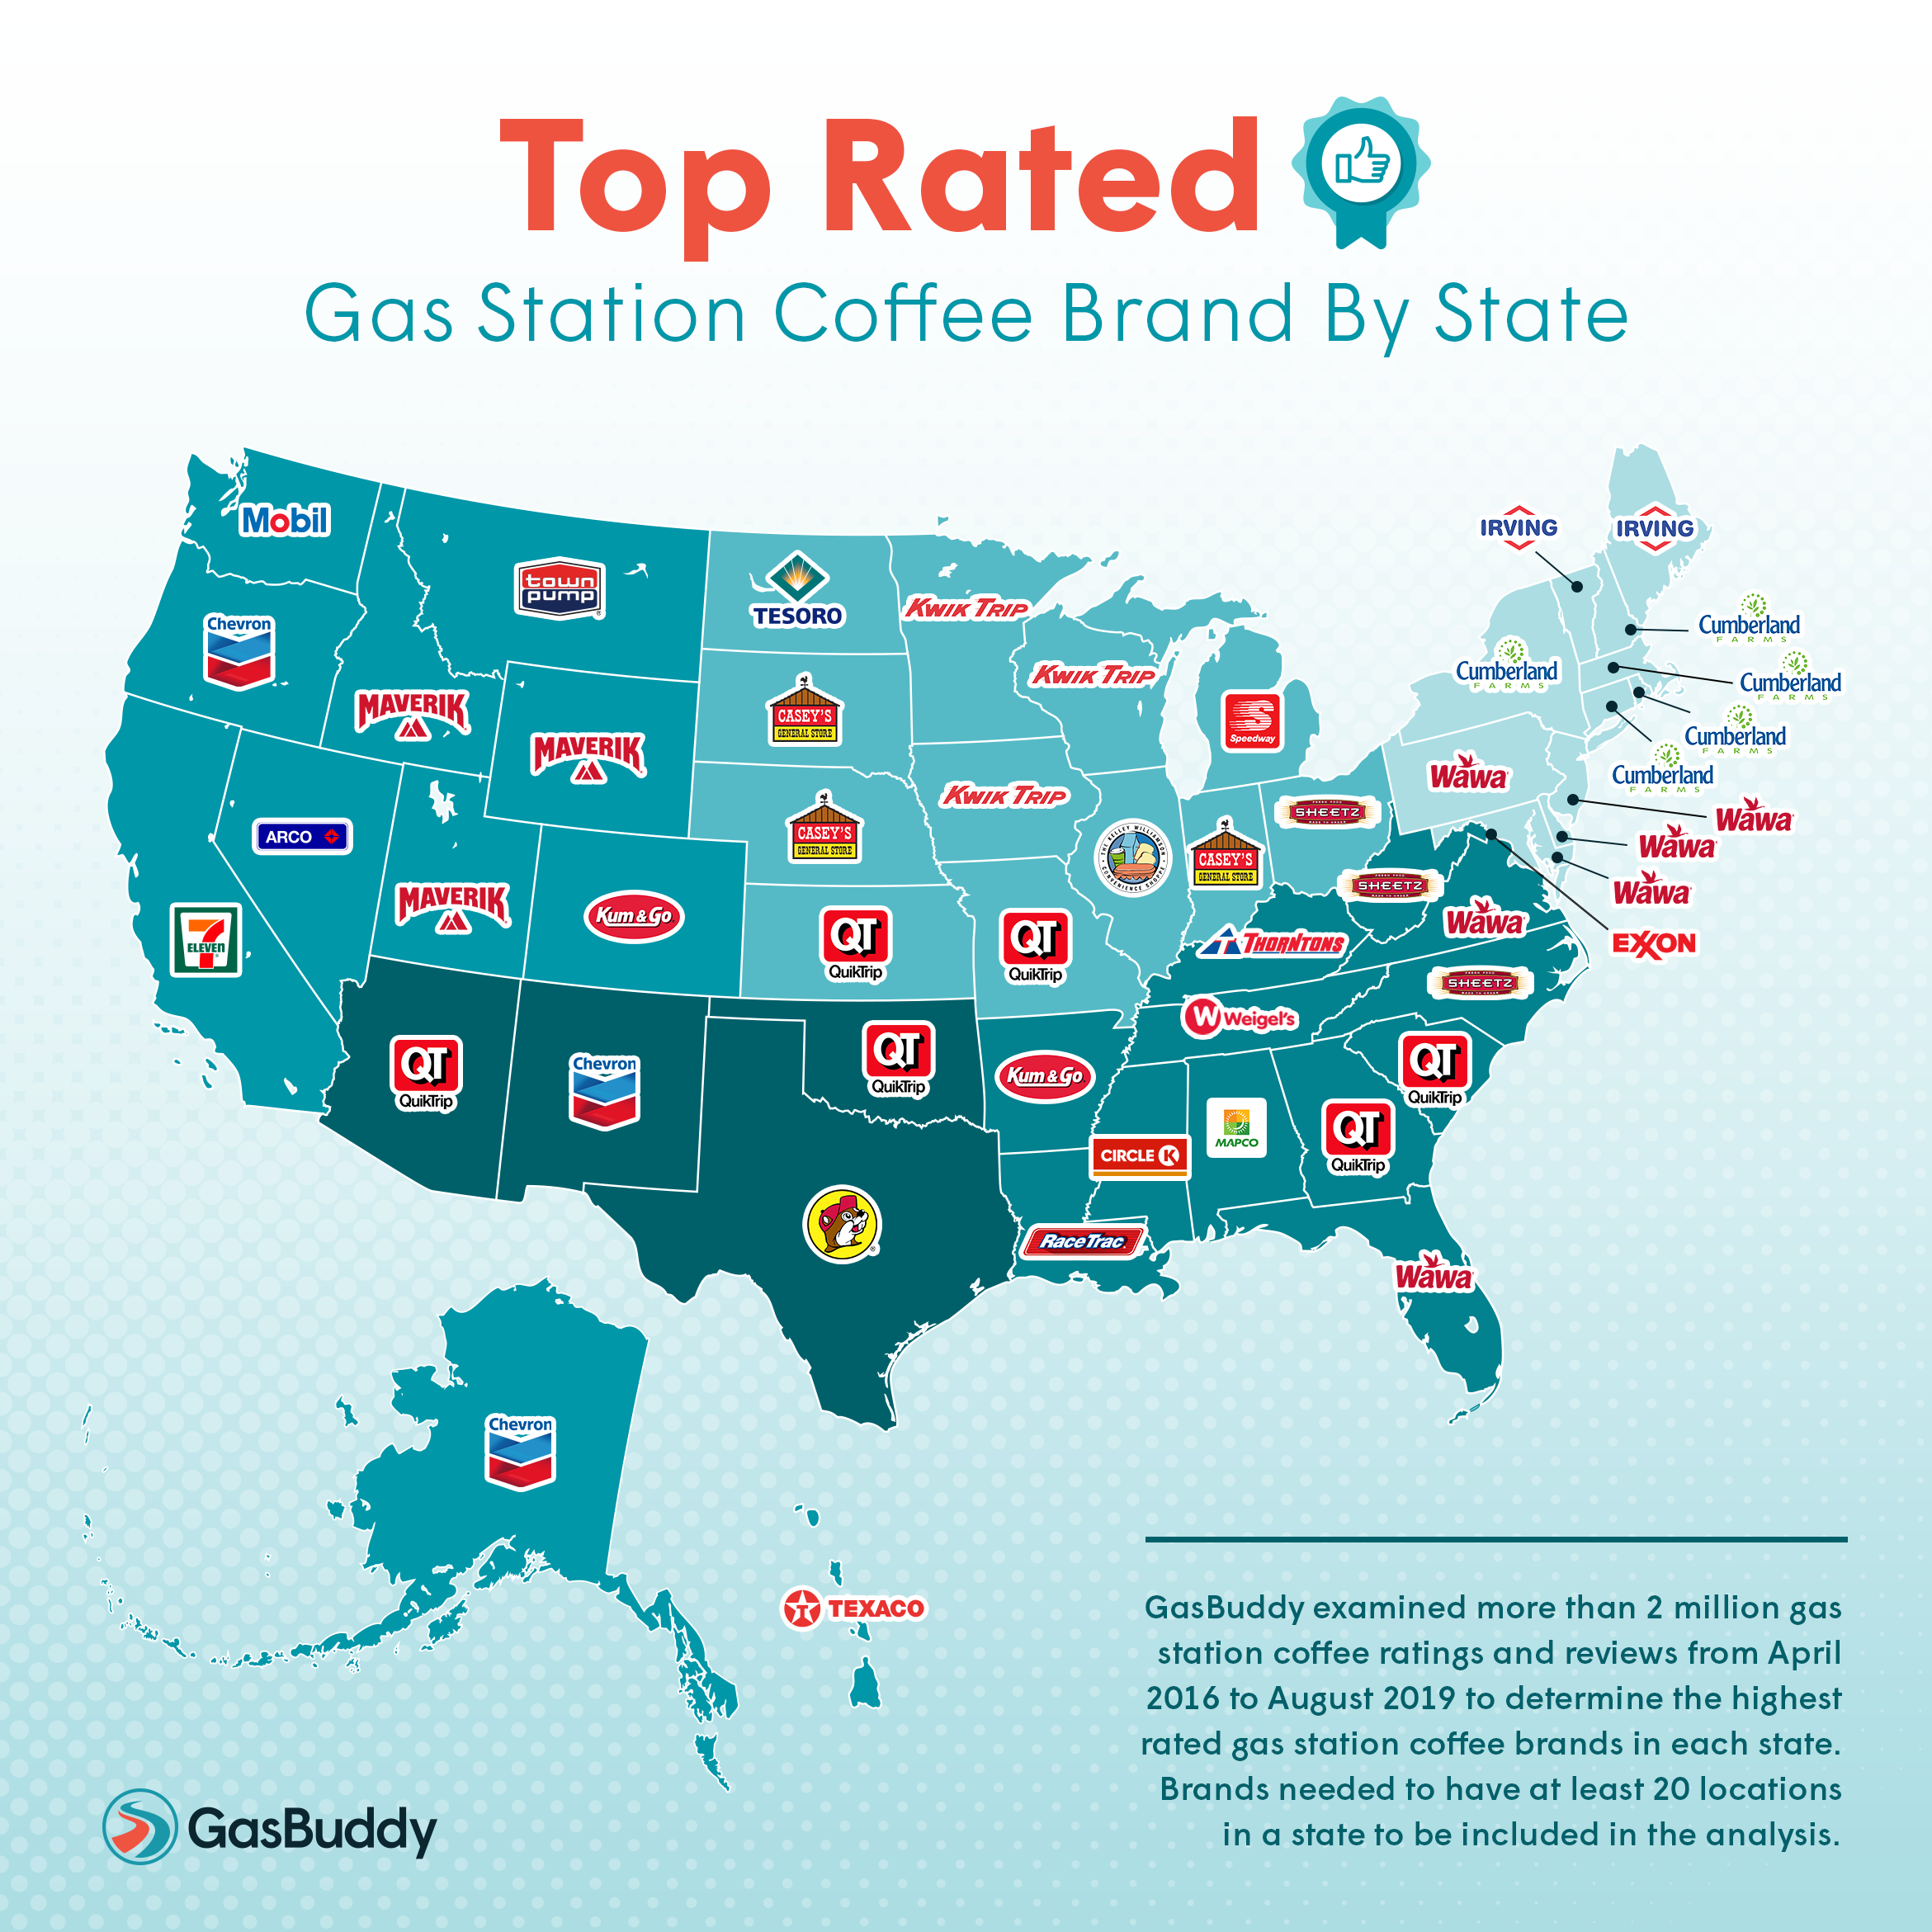 Speedway Has The Best Gas Station Coffee In Michigan